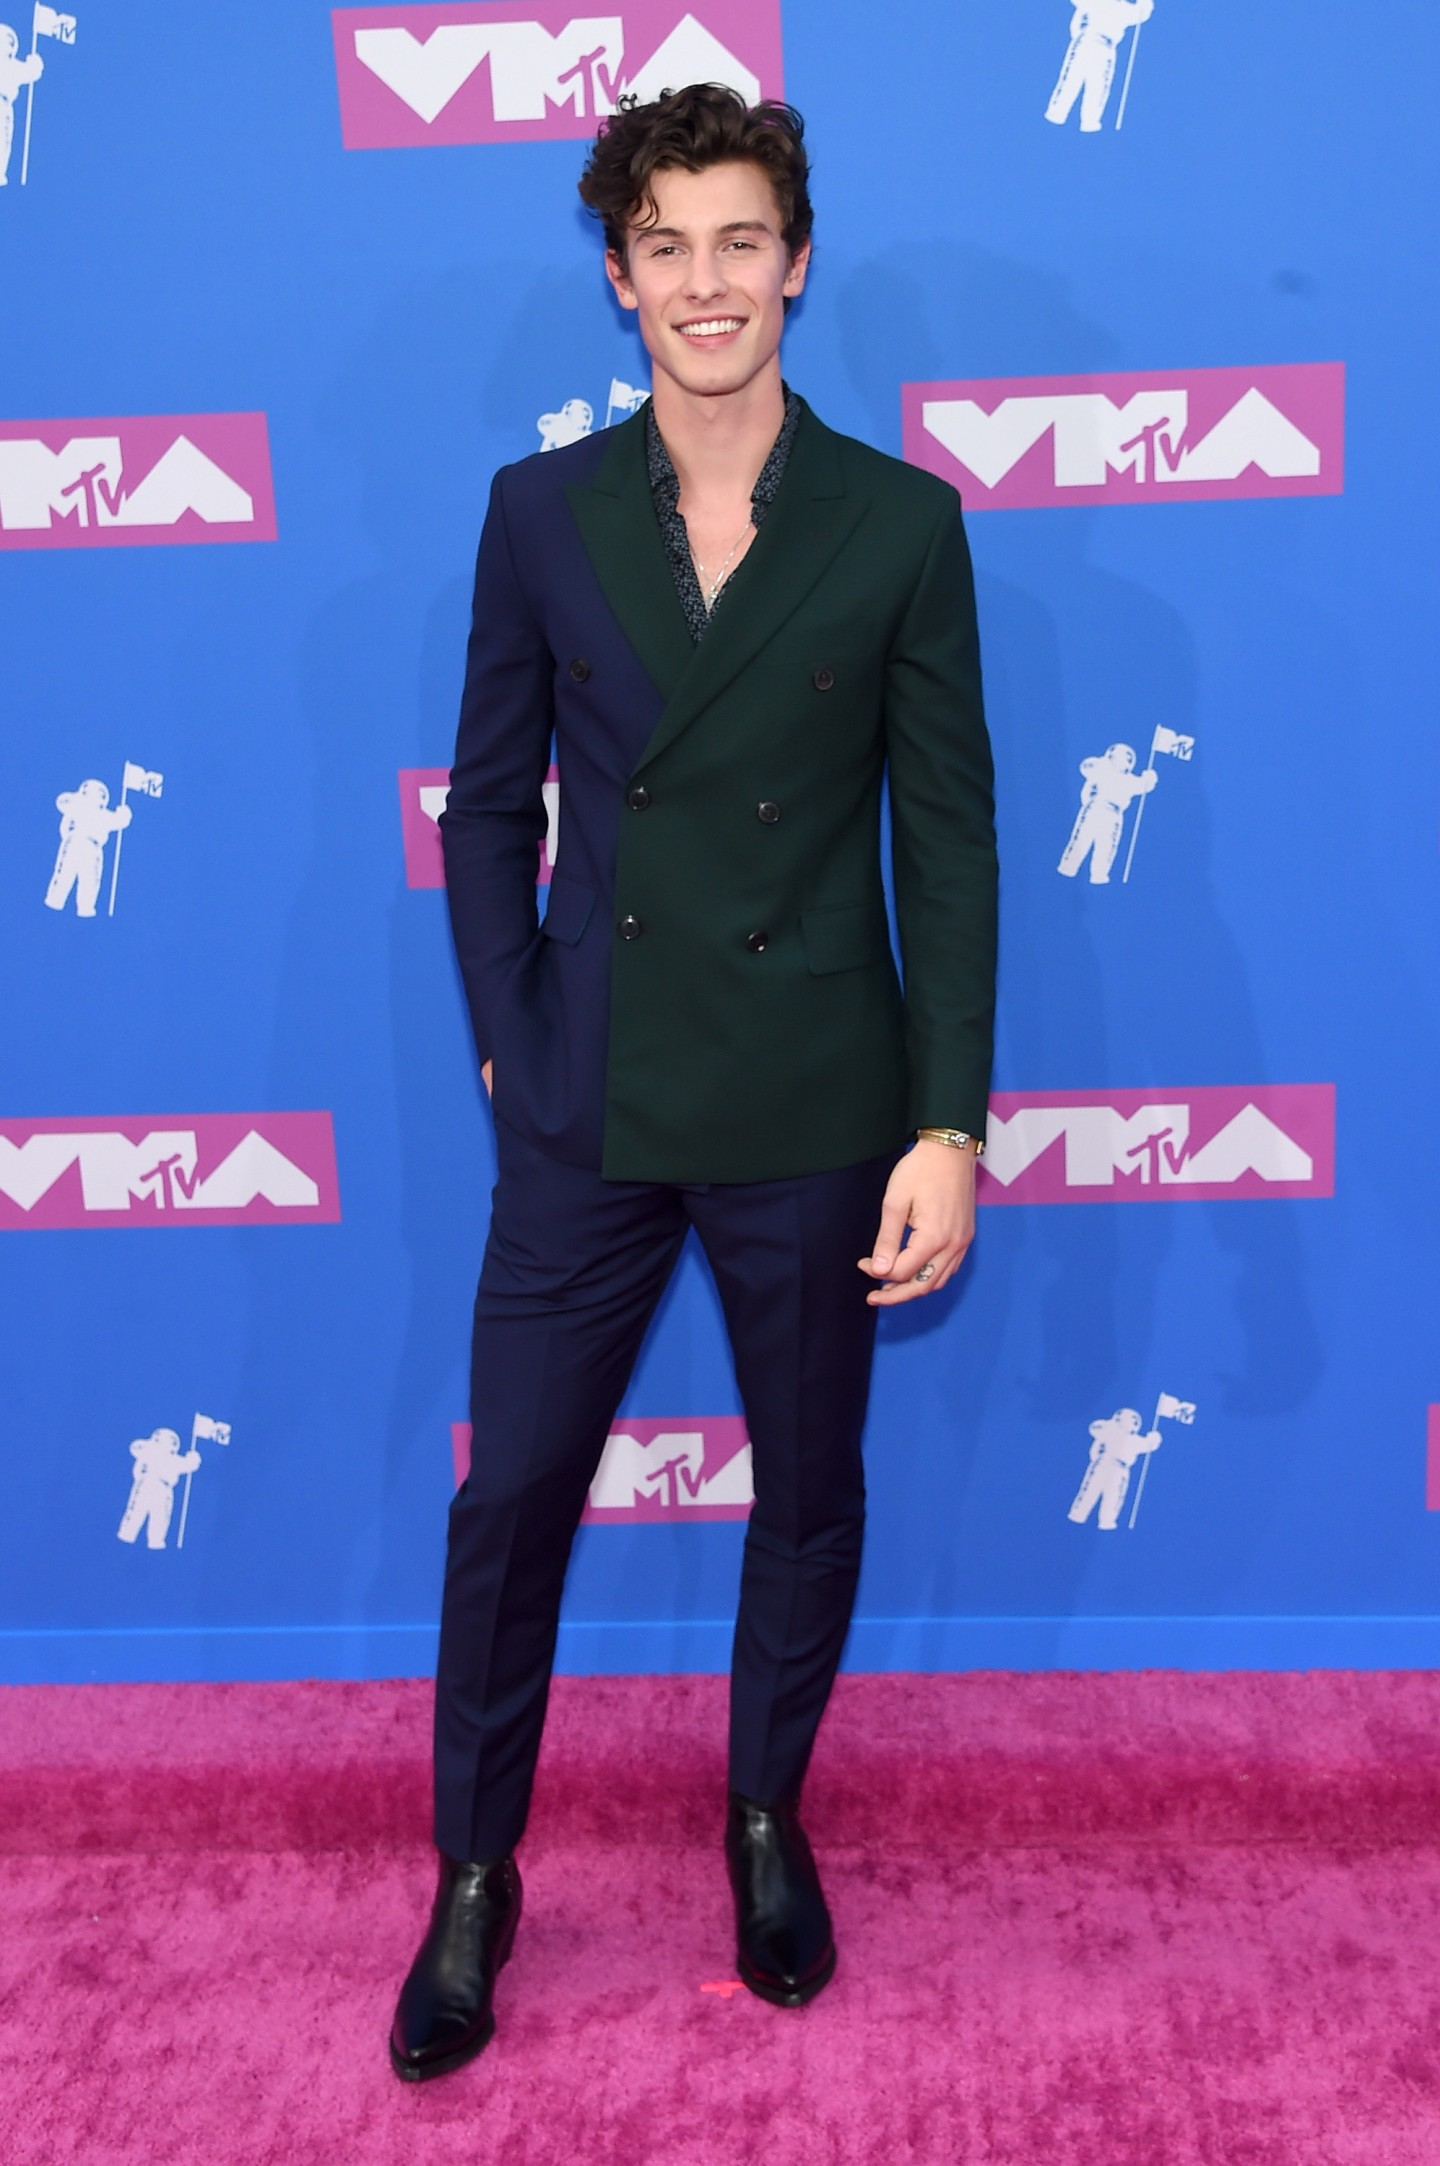 Here are all the best looks from the 2018 VMAs red carpet